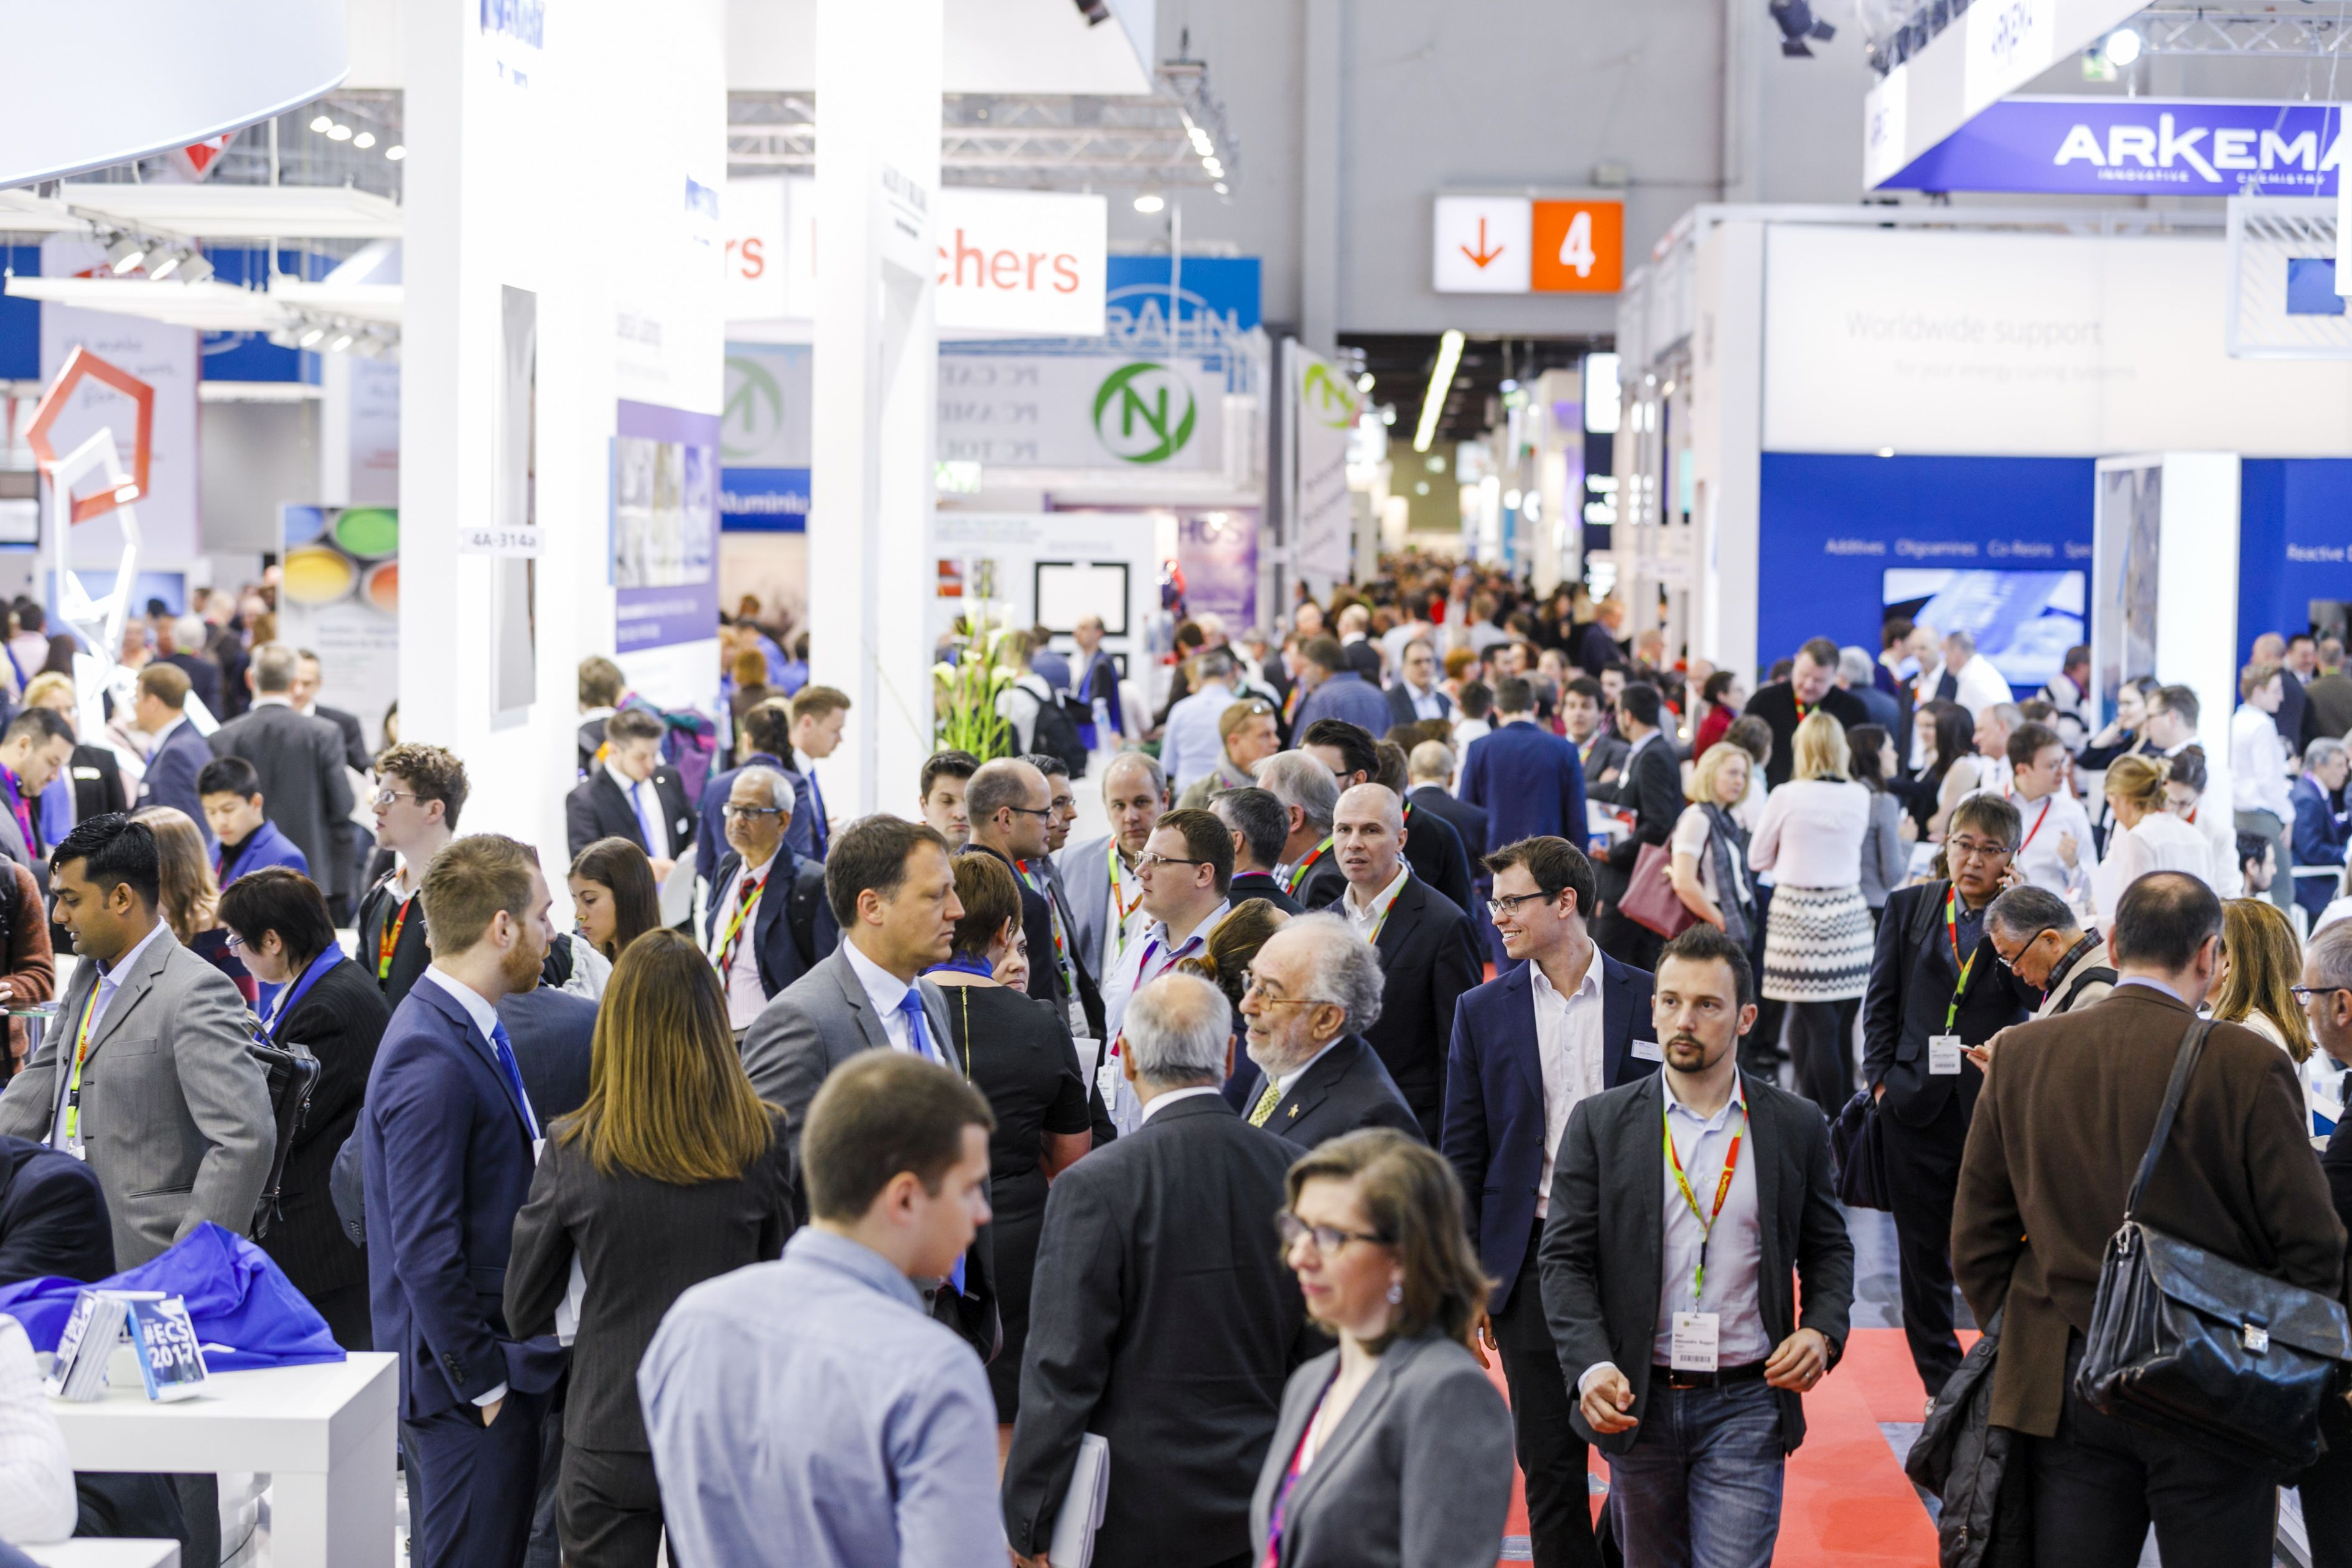 Impression of 2017 European Coatings Show 2017 (© Picture source: www.european-coatings-show.com)